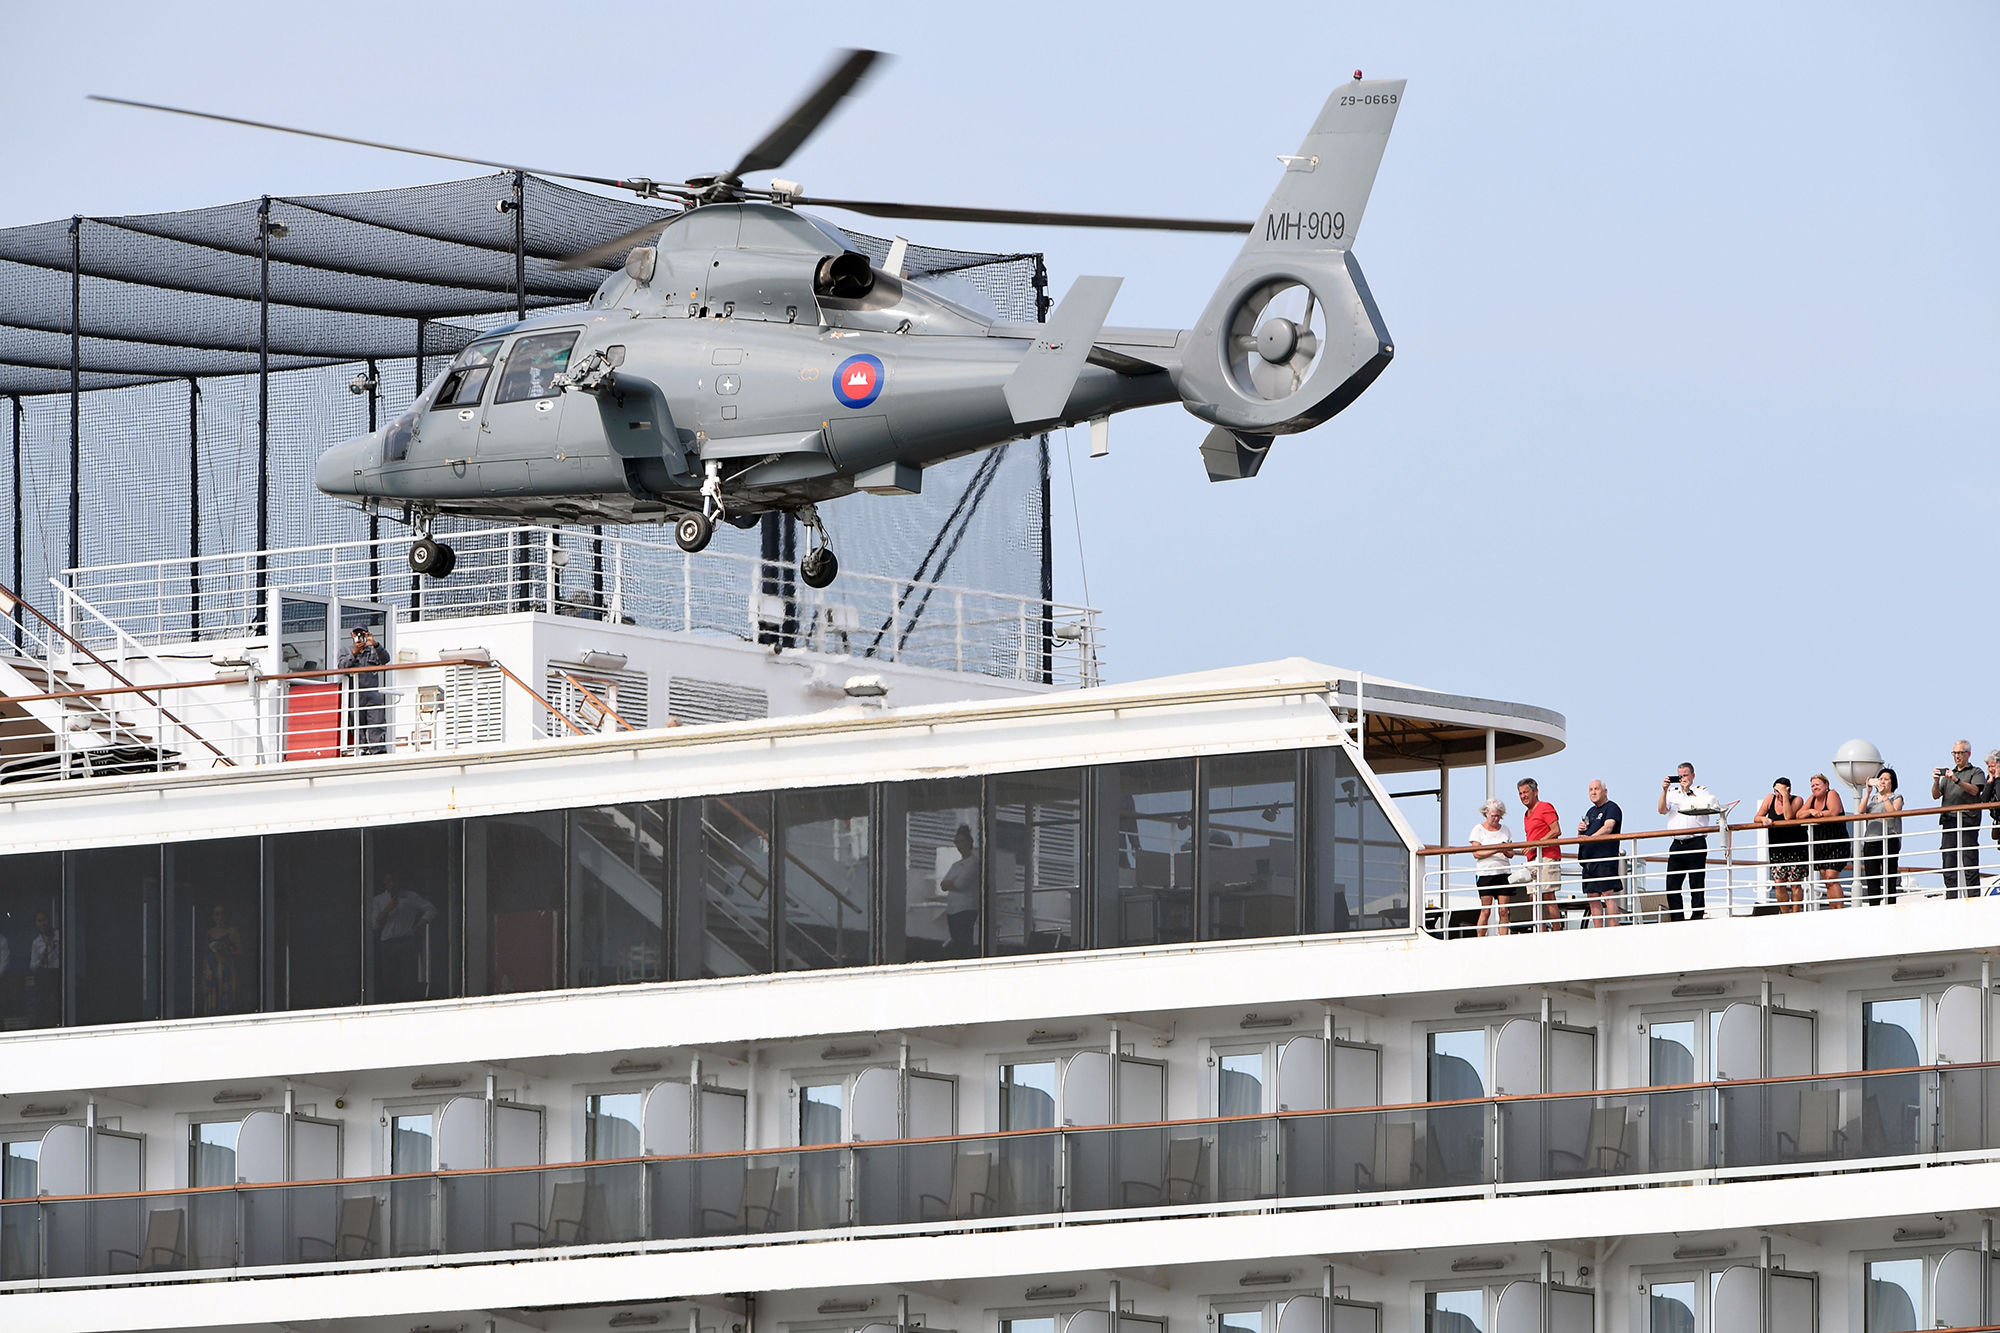 People on a deck of the Westerdam cruise ship watch a helicopter take off in Sihanoukville on Tuesday, February 18.